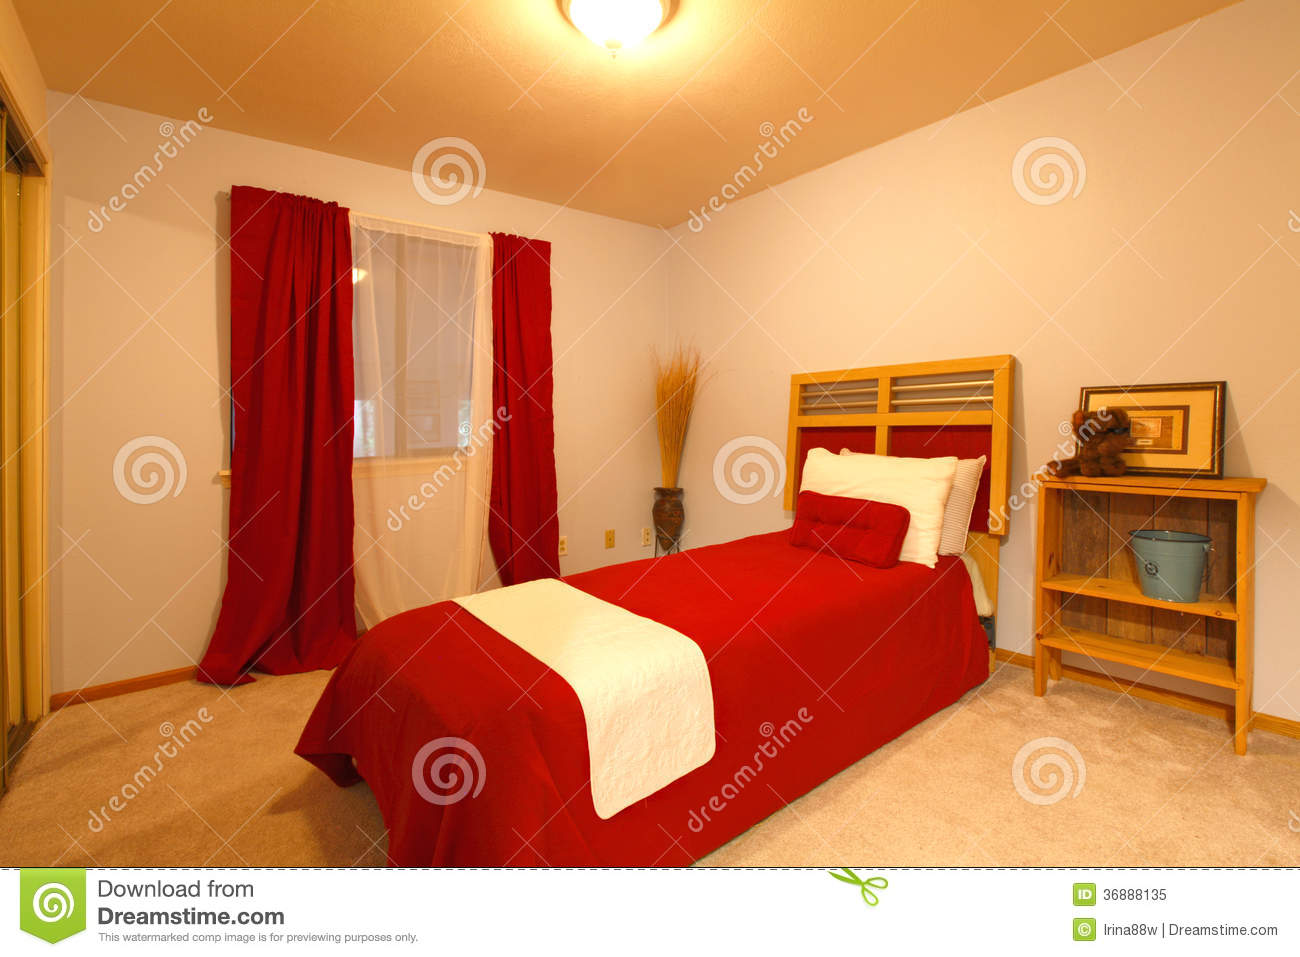 Piccola camera da letto calda stile country fotografia - Camera letto country ...